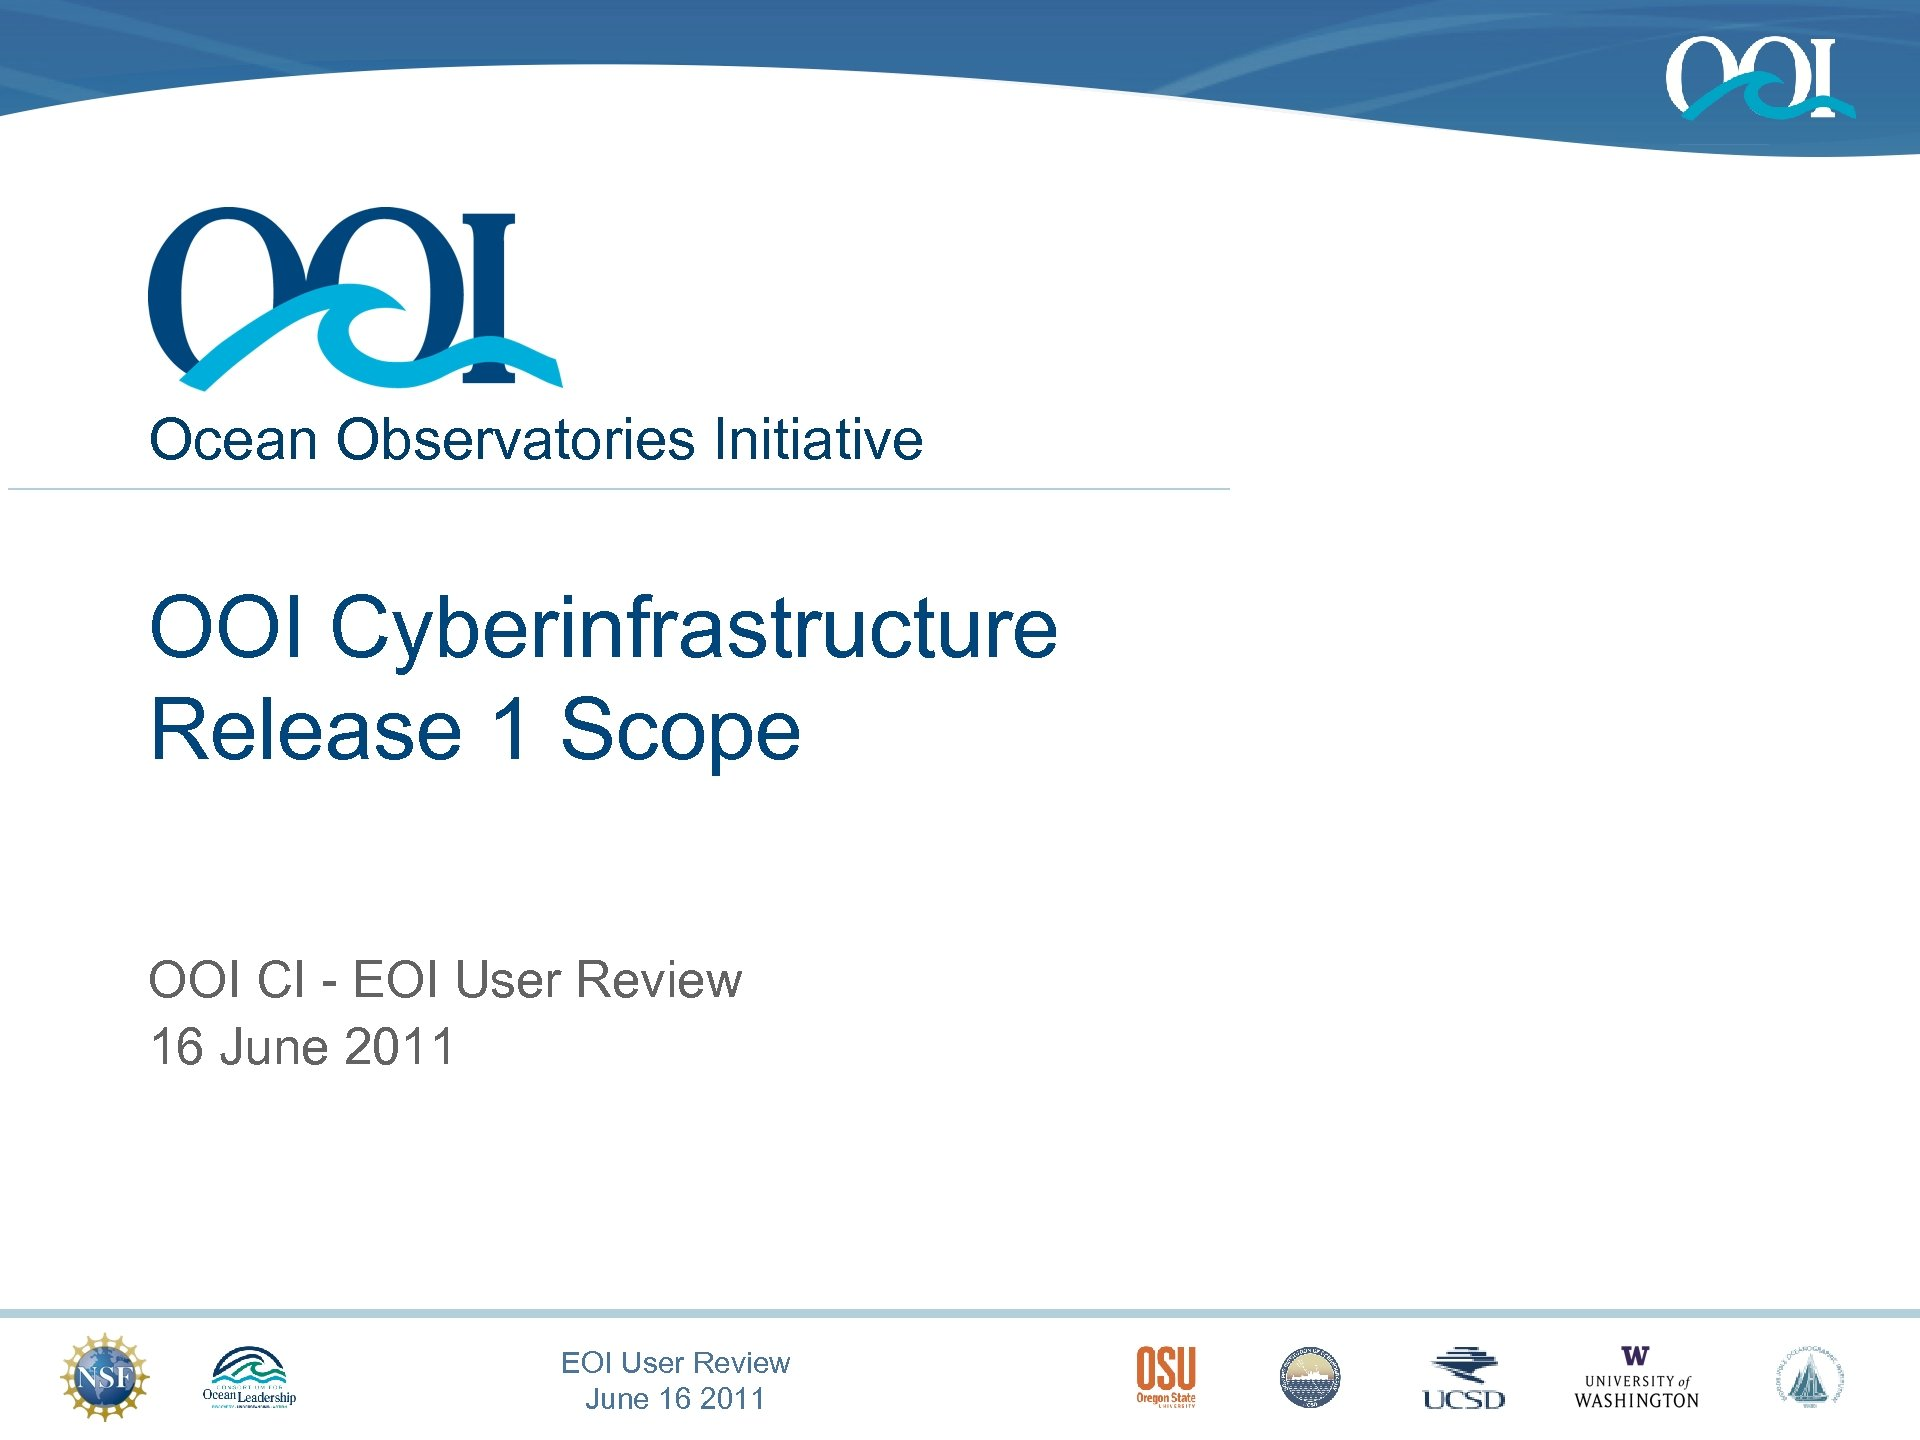 Ocean Observatories Initiative OOI Cyberinfrastructure Release 1 Scope OOI CI - EOI User Review